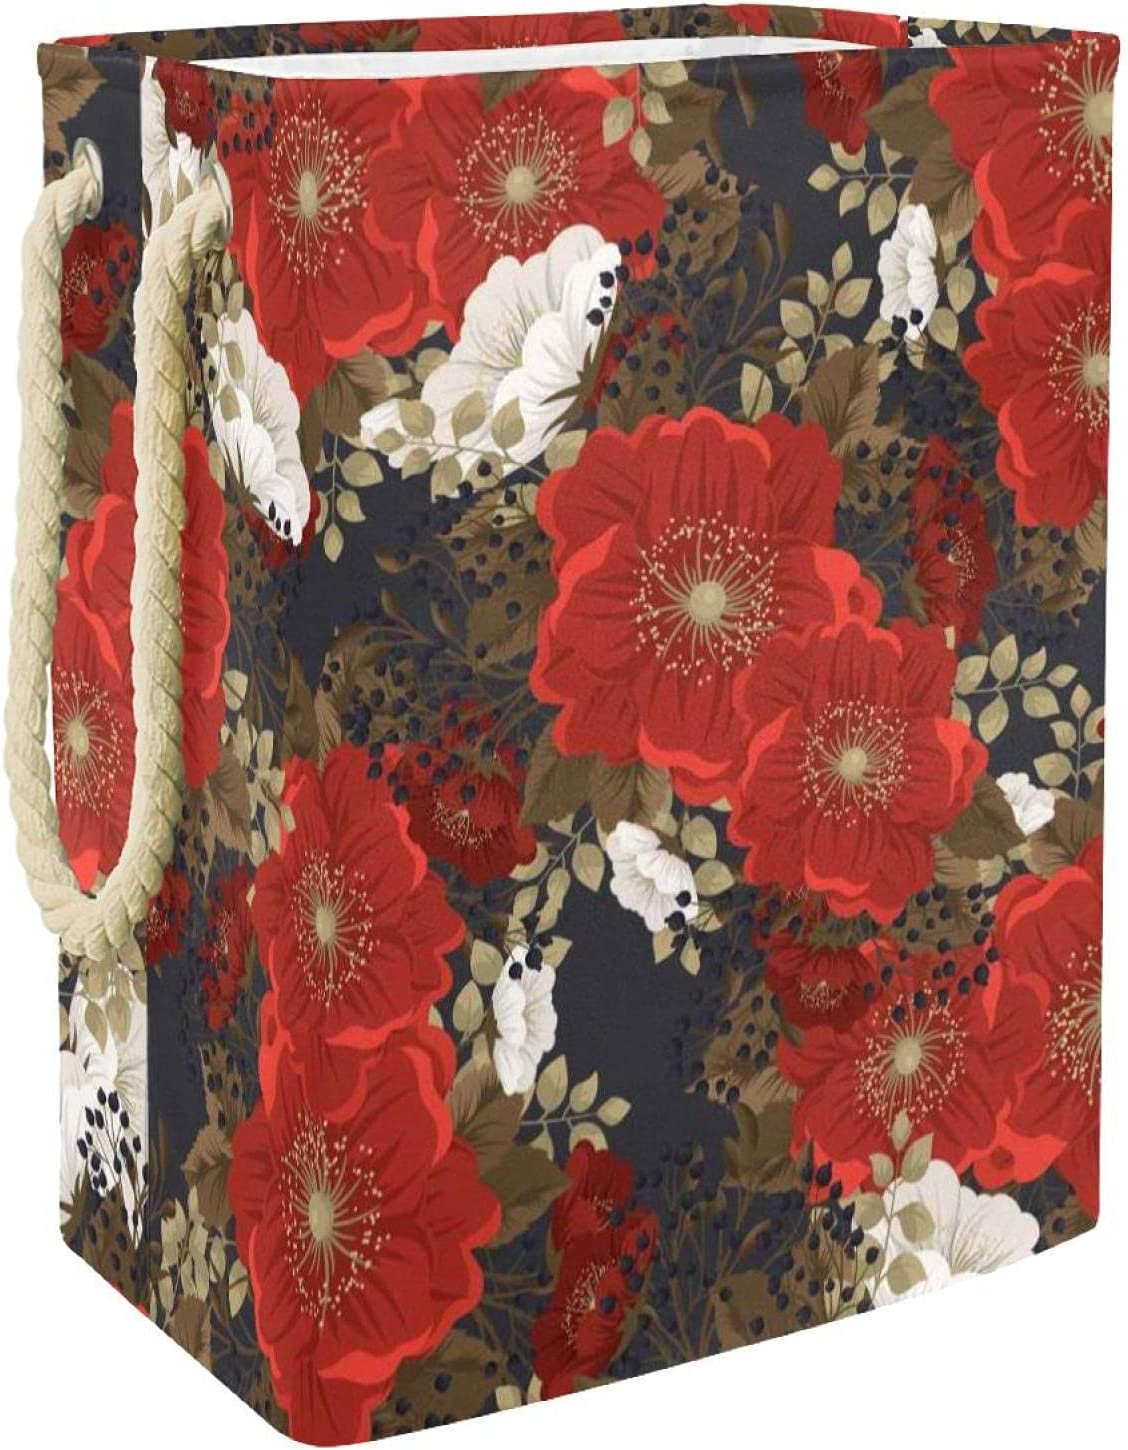 Gifts MAPOLO Laundry Now free shipping Hamper Red Storage Foldable Linen Flower